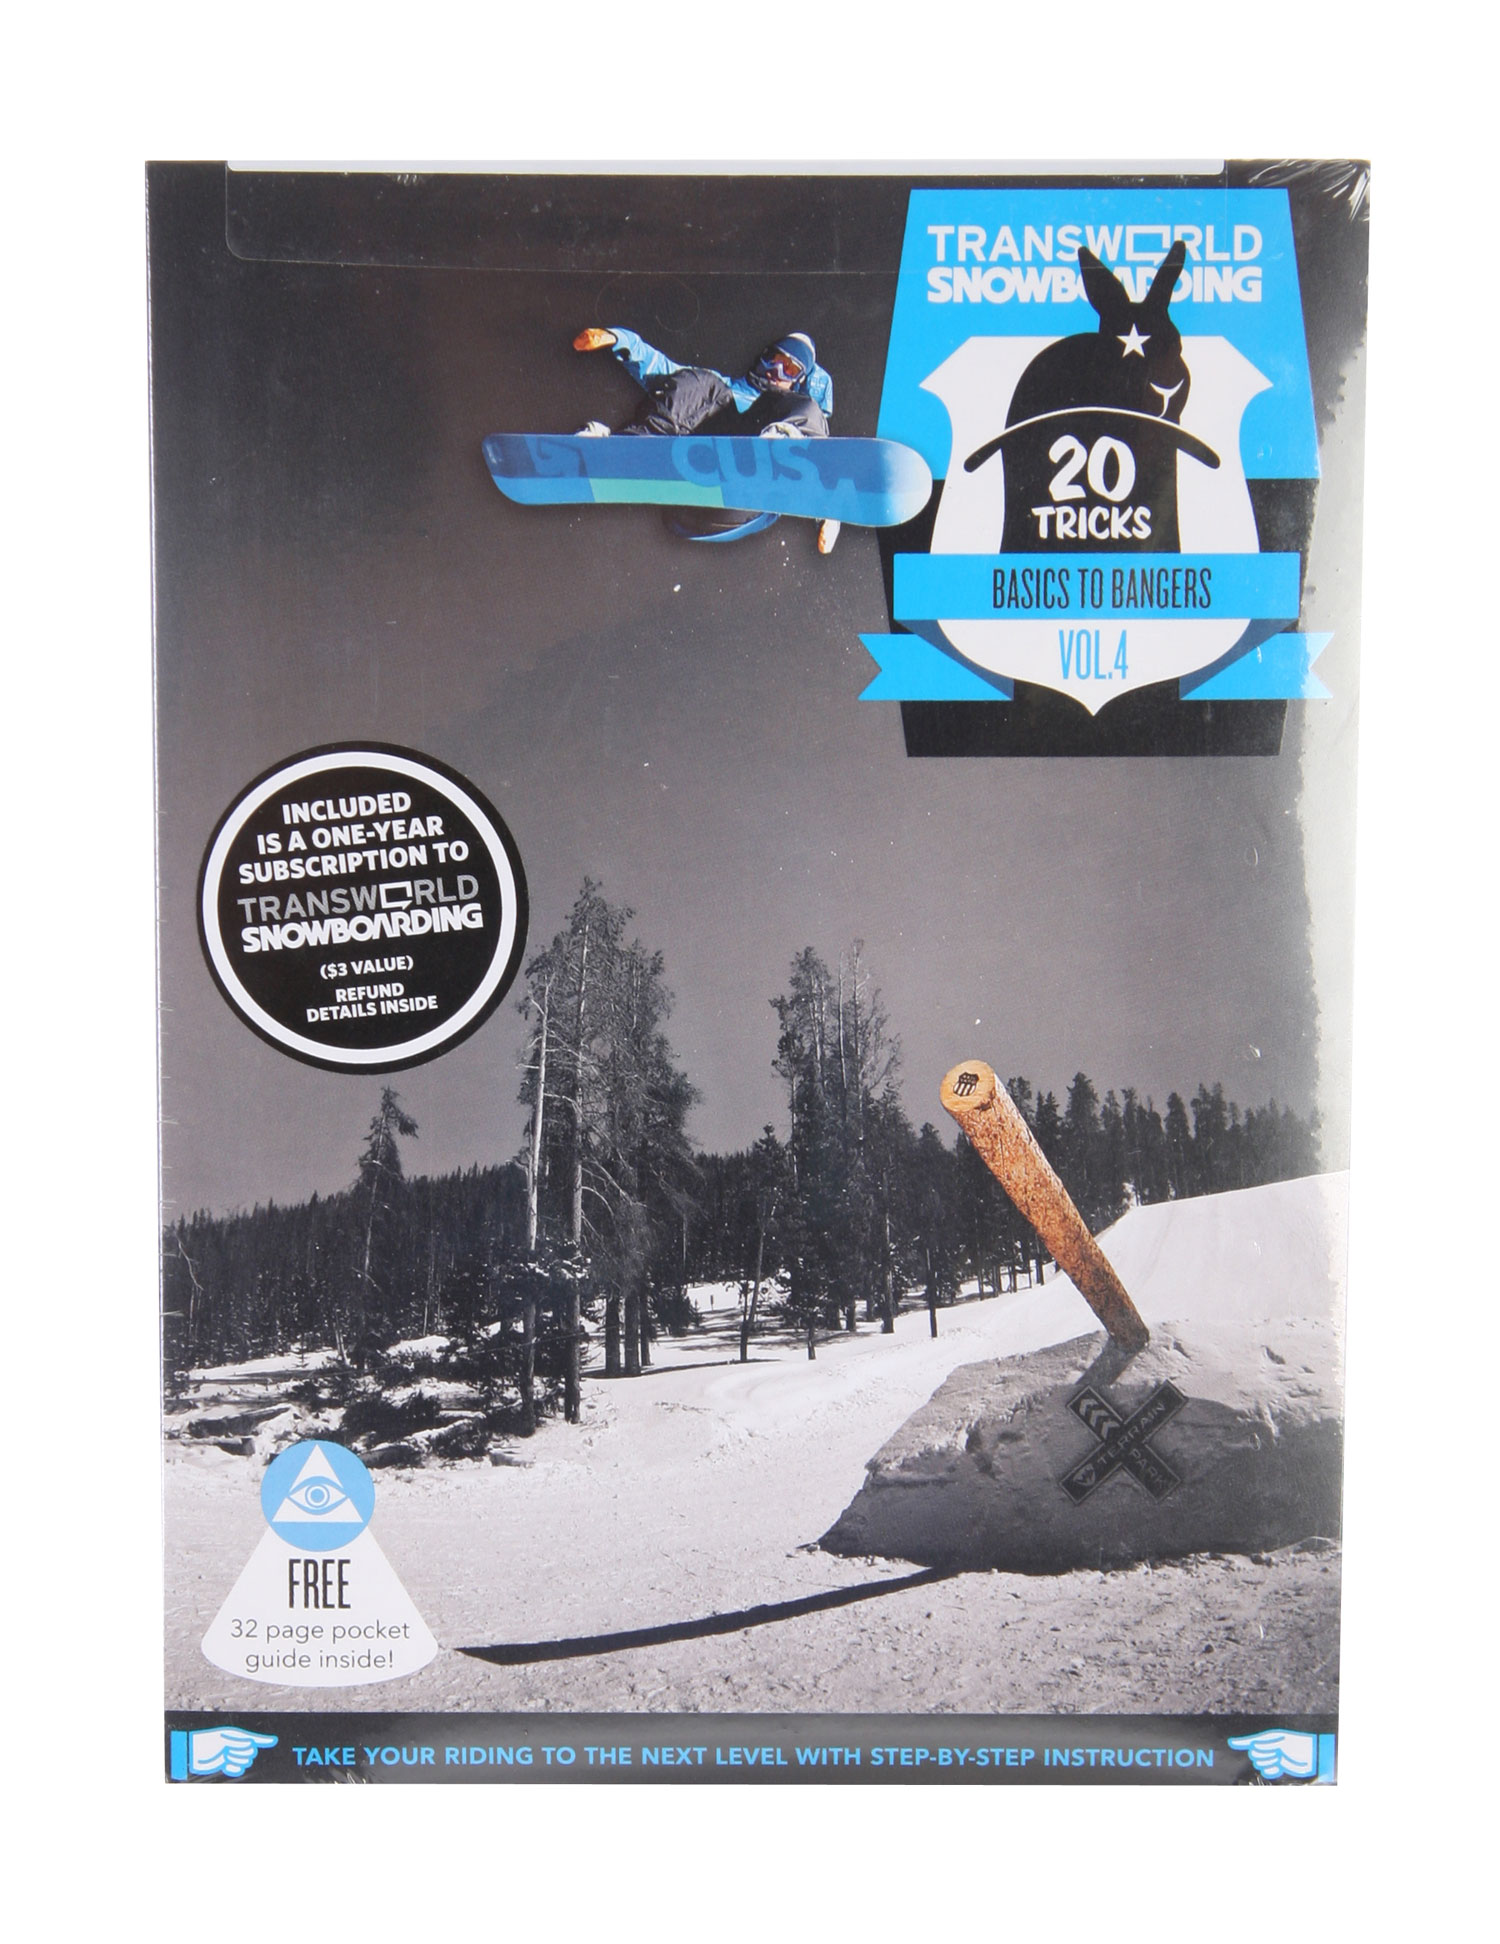 Snowboard Here it is: 20 Tricks Volume II snowboard DVD. Again Transworld enlisted snowboarding's top pros to teach you 20 new tricks. Learn methods from Pat Moore, or one-footers from Josh Dirksen. Simon Chamberlain will let you know everything about his tech box moves, while Andreas Wiig takes you through the frontside 900. And the list of heavies and hammers goes on. - $10.37